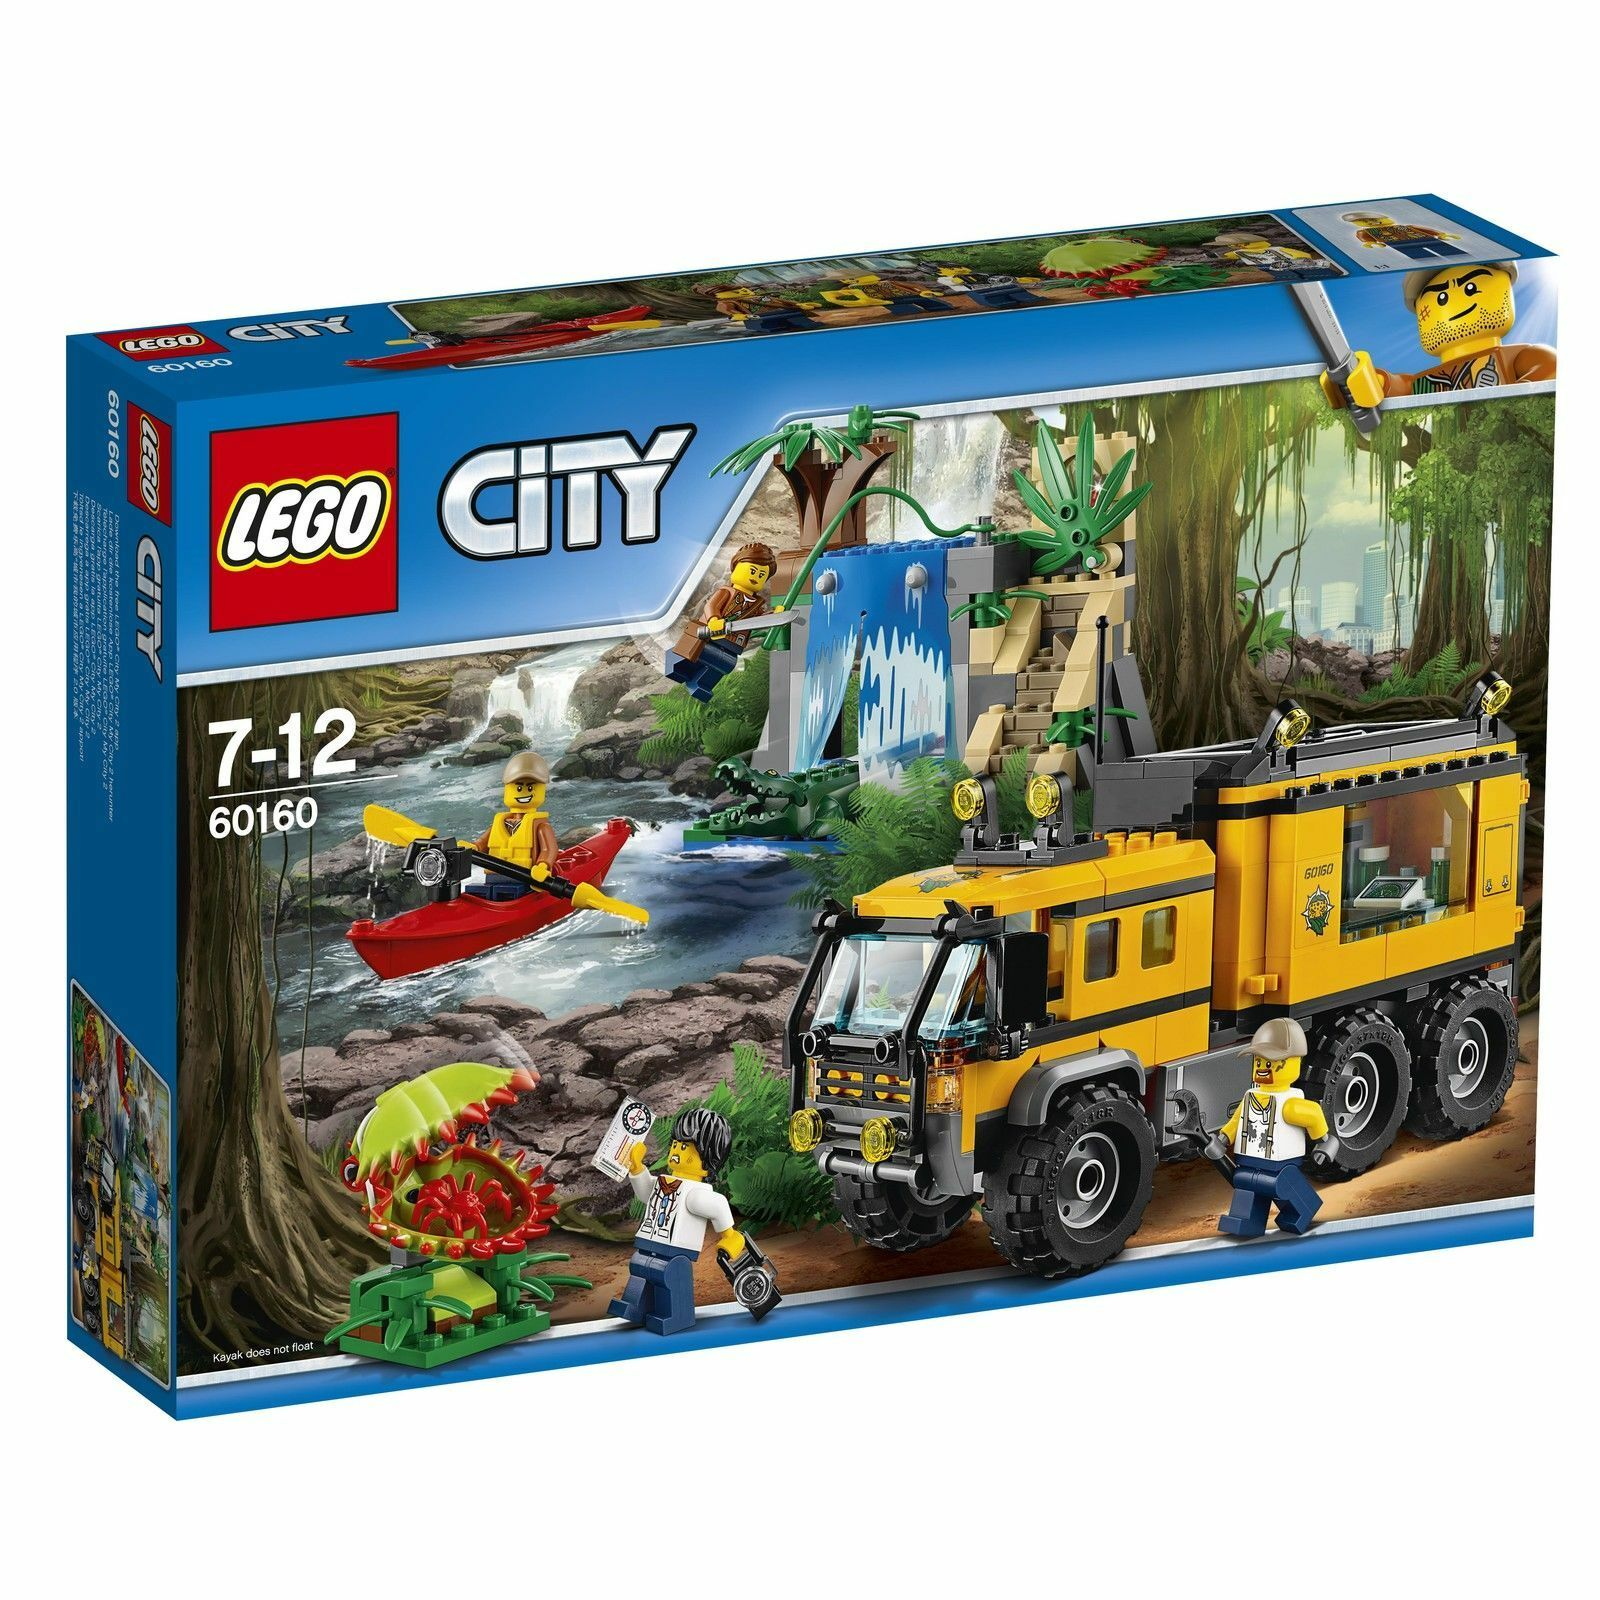 LEGO® City 60160  Mobiles Dschungel-Labor  Expedition NEU OVP  | Helle Farben